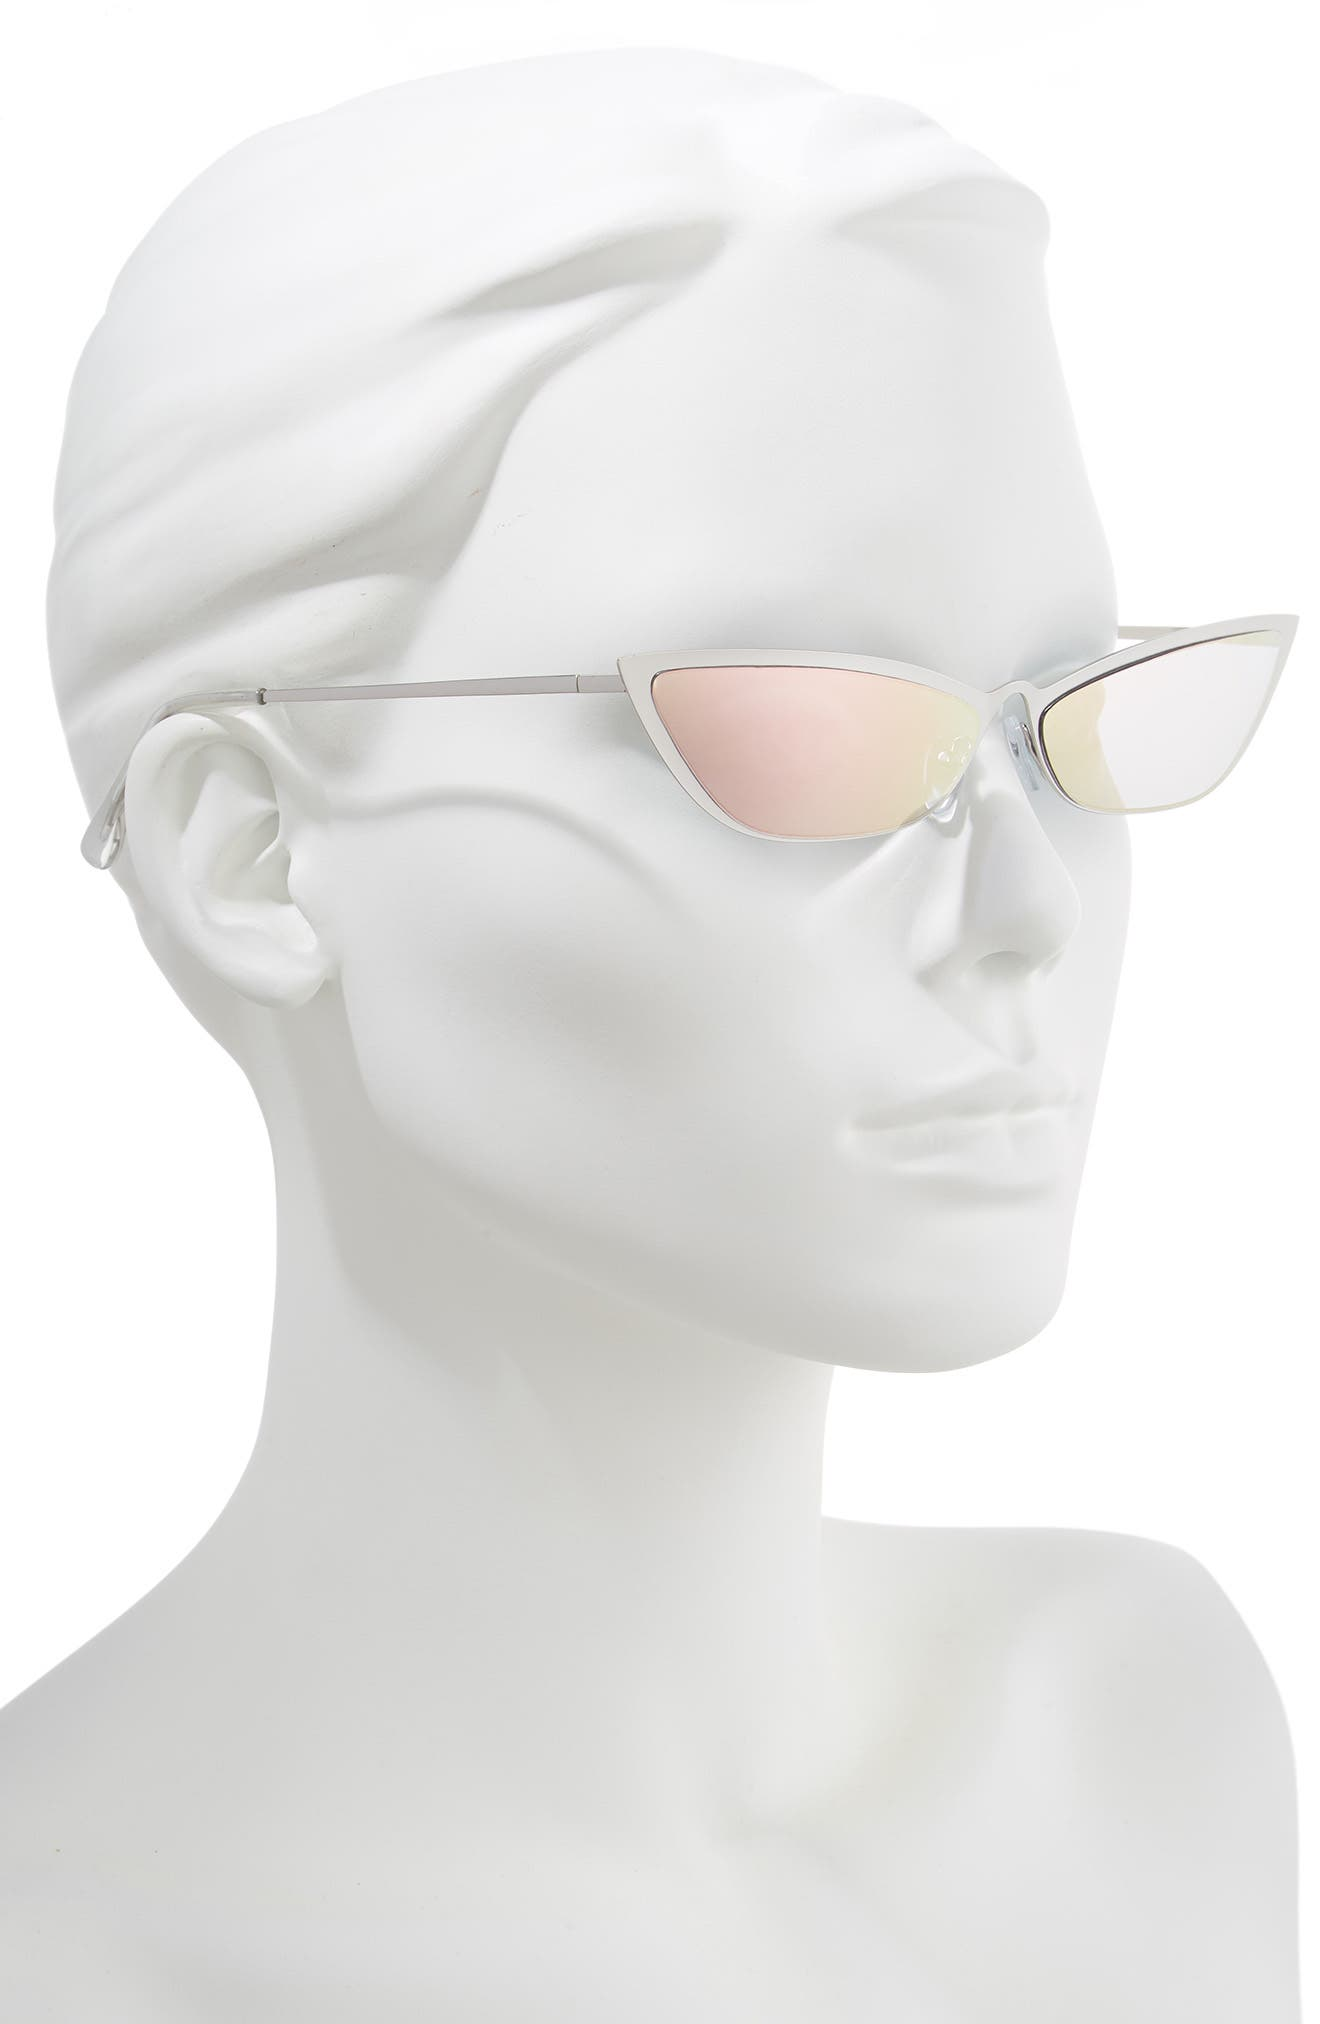 67mm Mirror Cat Eye Sunglasses,                             Alternate thumbnail 2, color,                             SILVER/ PINK